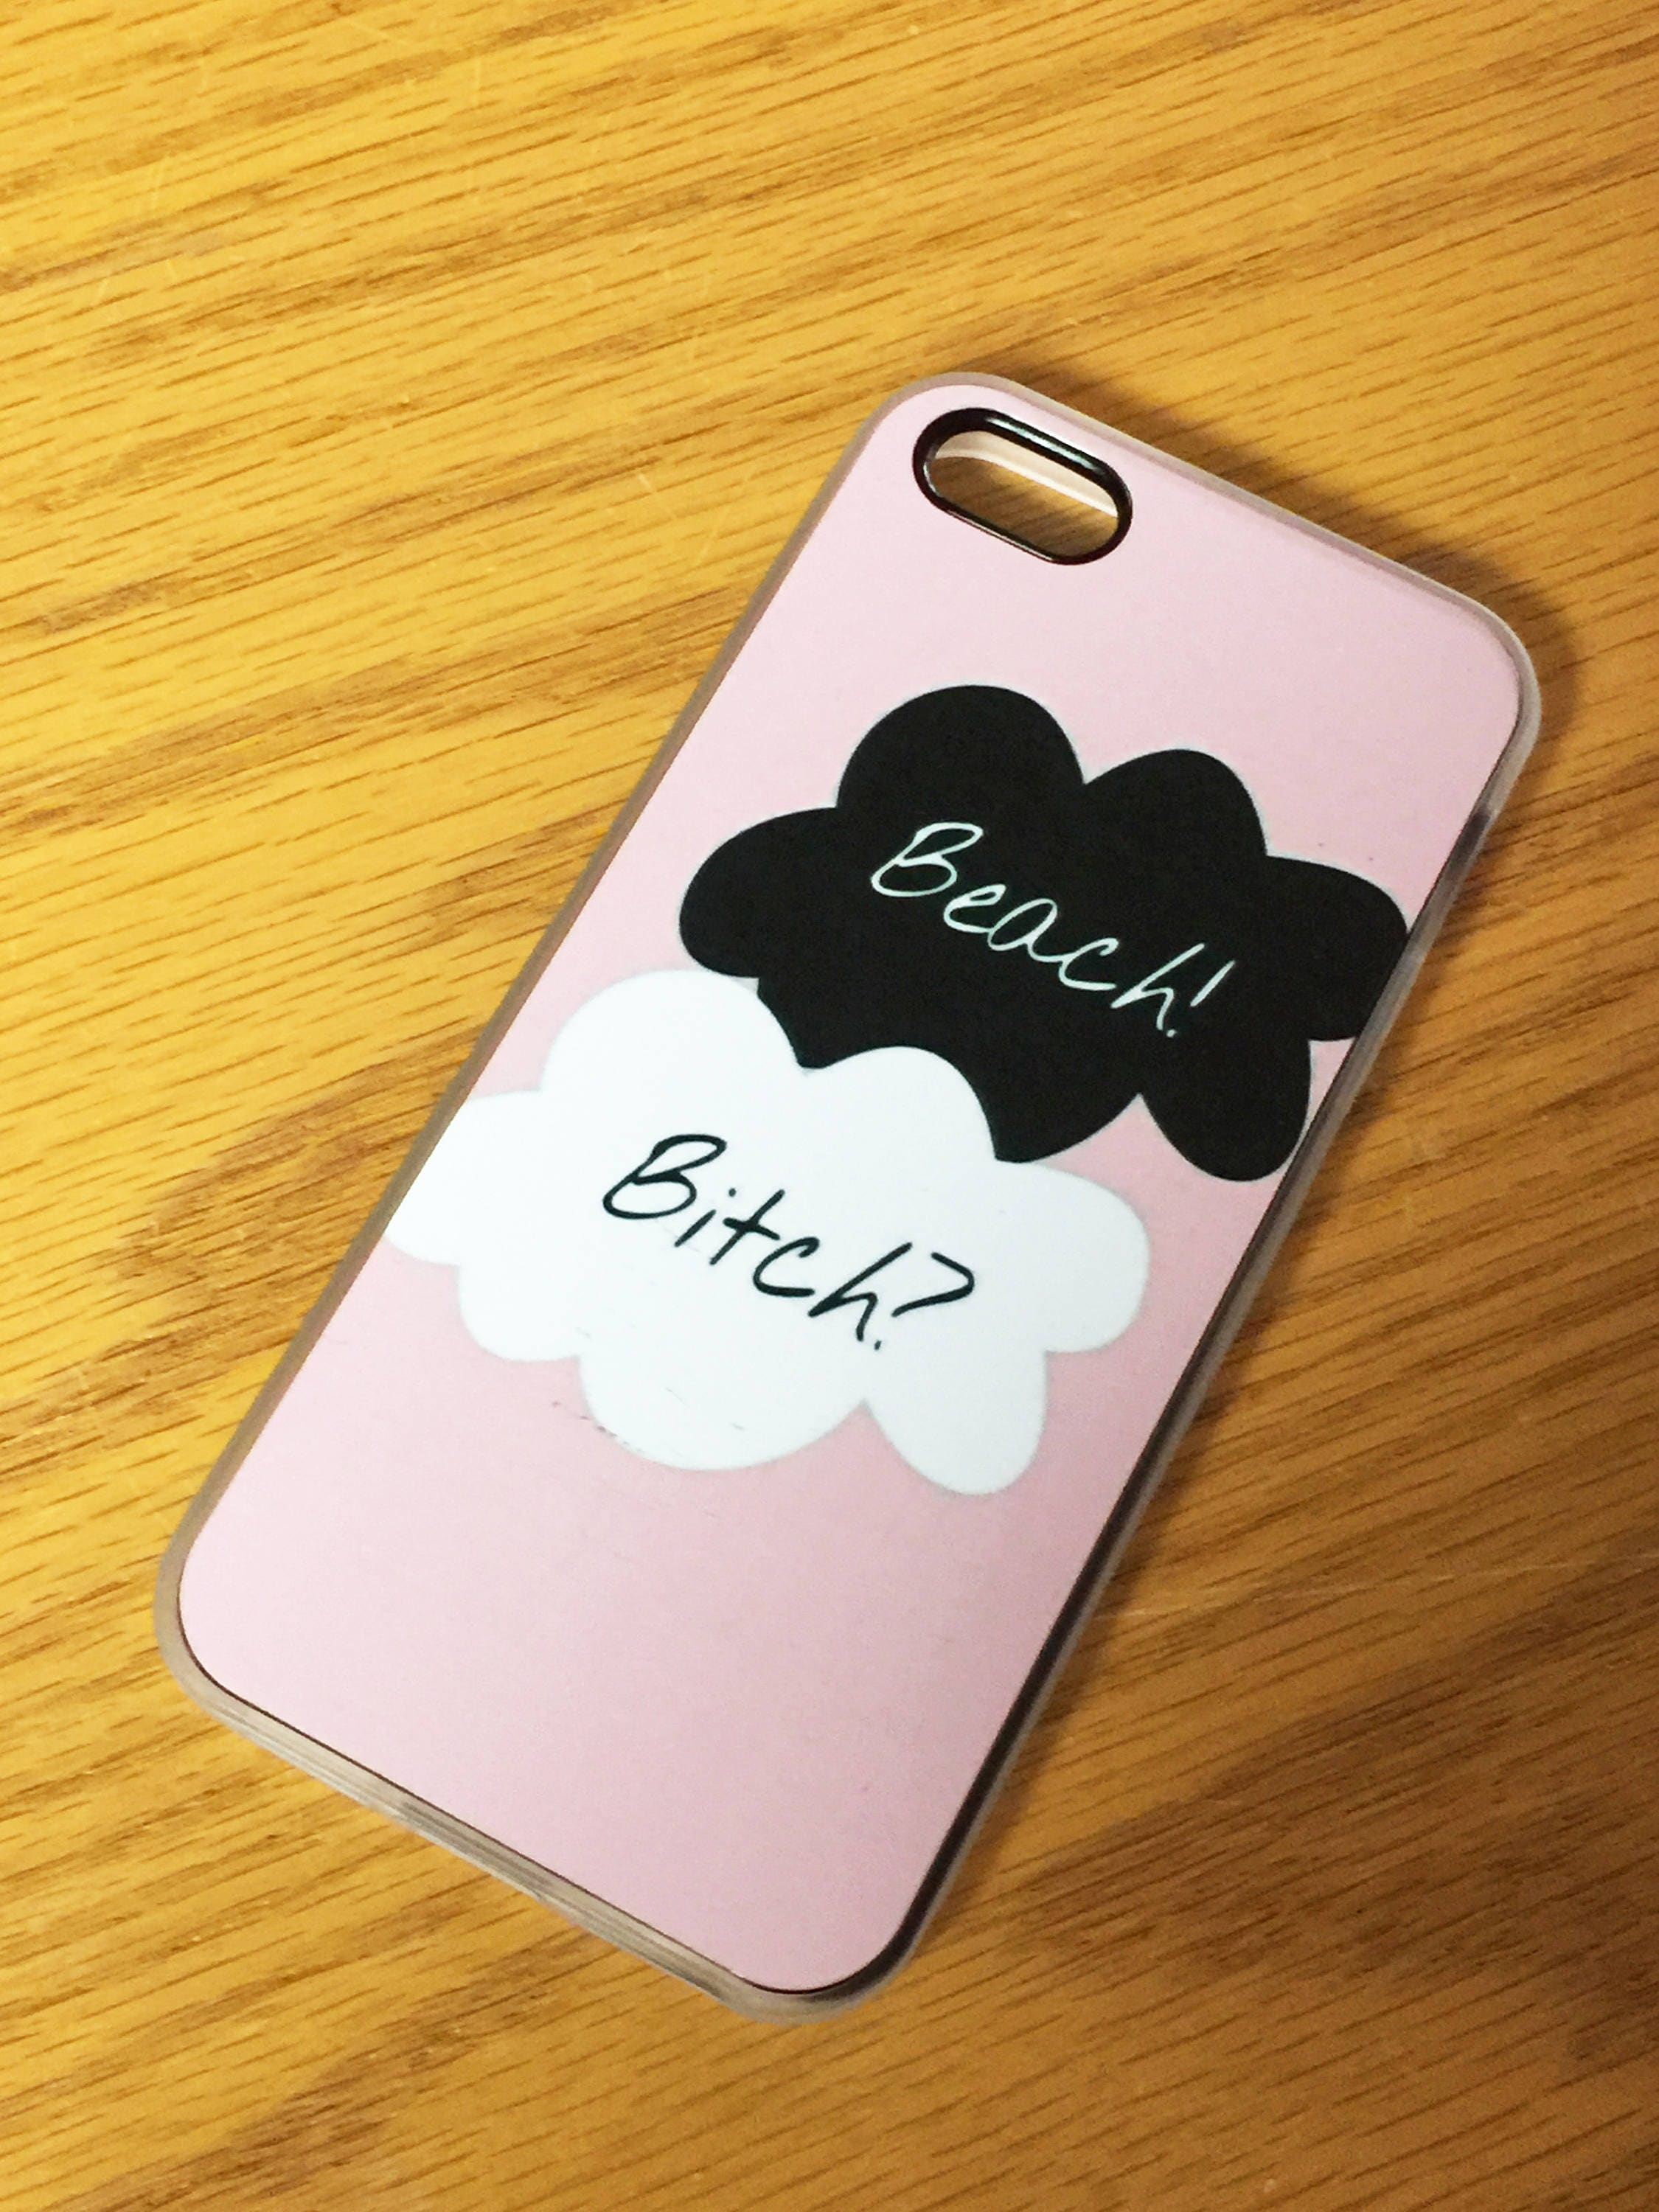 bts phone case iphone 6